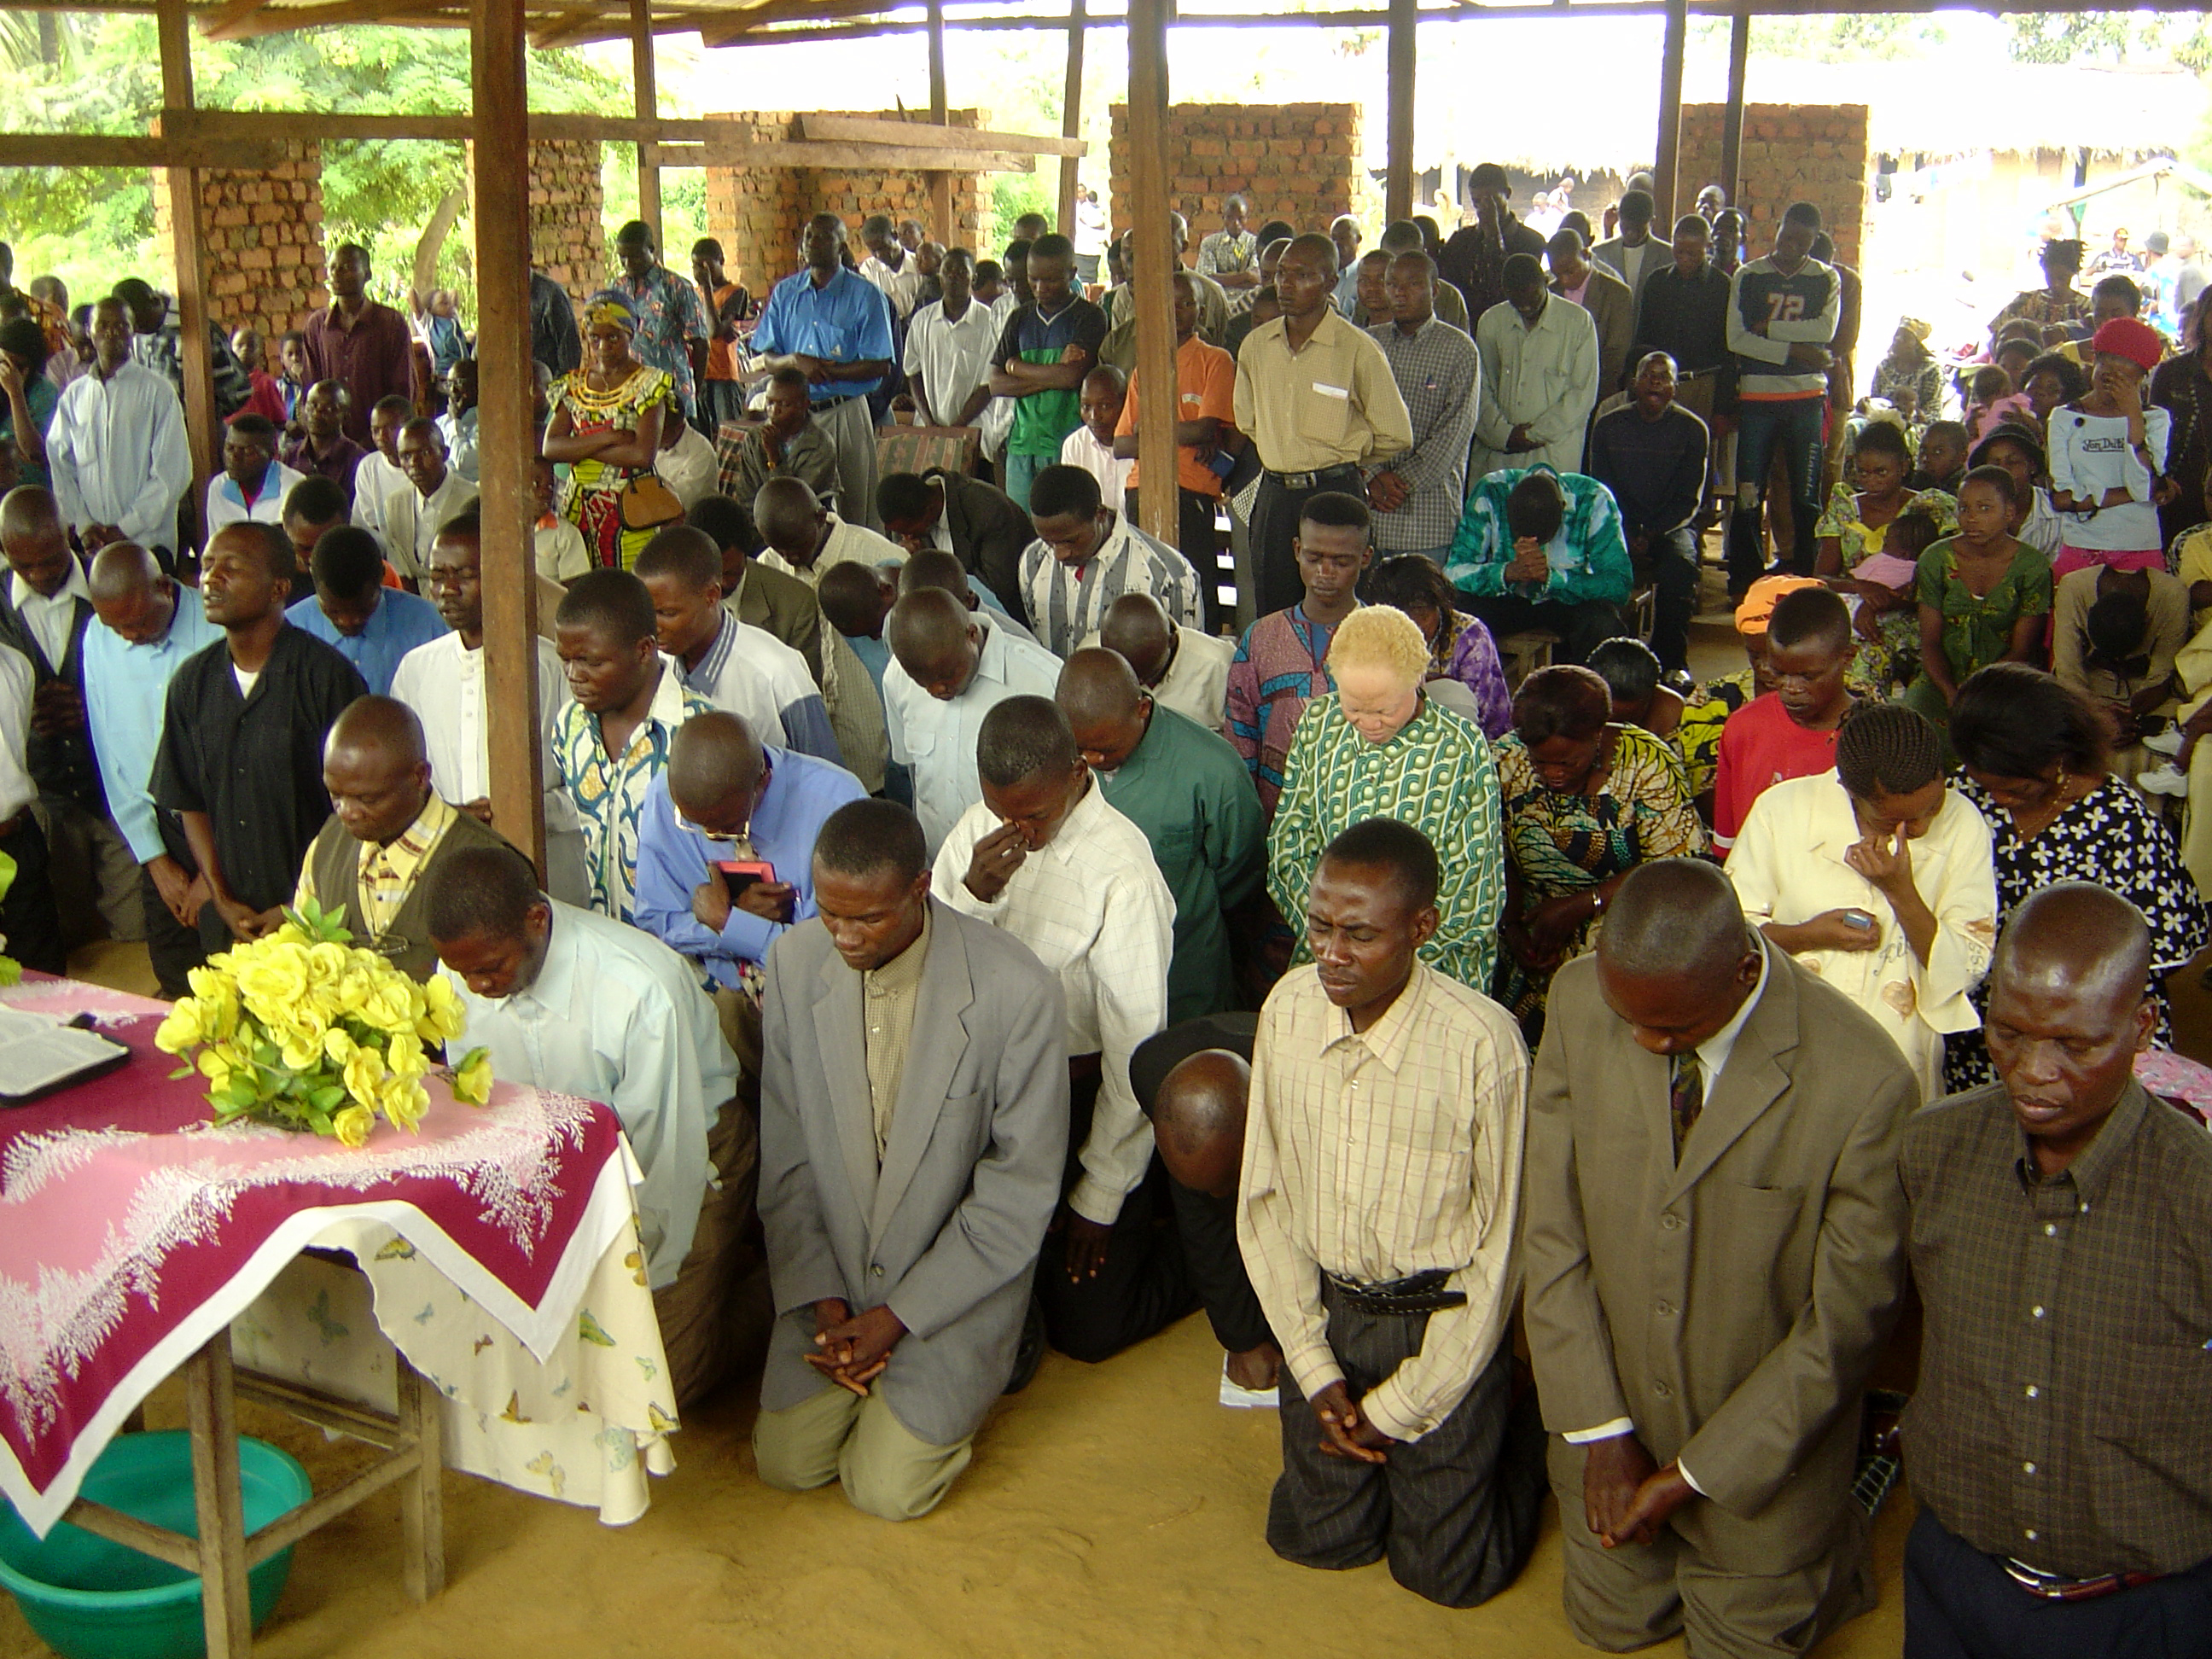 Church service in Kindu with new students praying at the altar